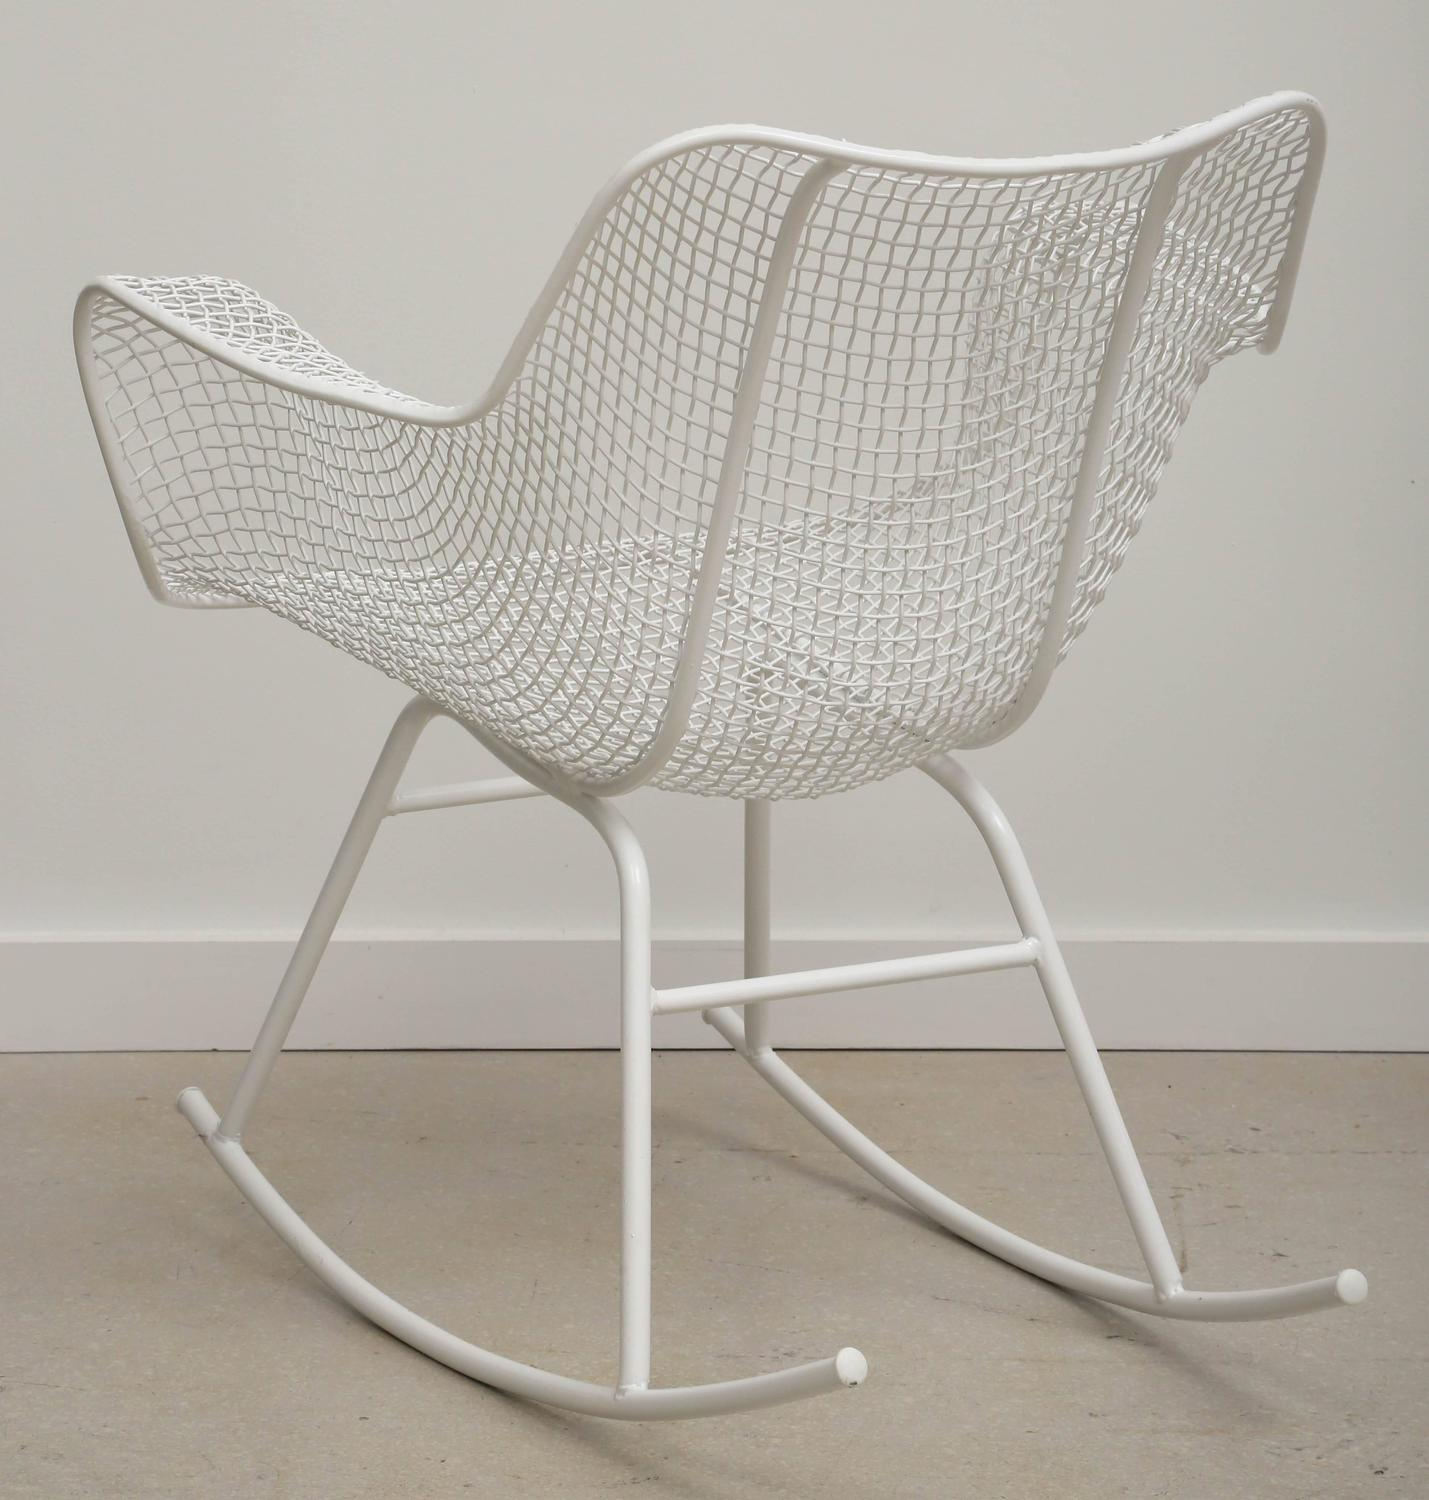 white rocking chairs for sale chairpro magyarorszag kft rare vintage sculptura chair russell